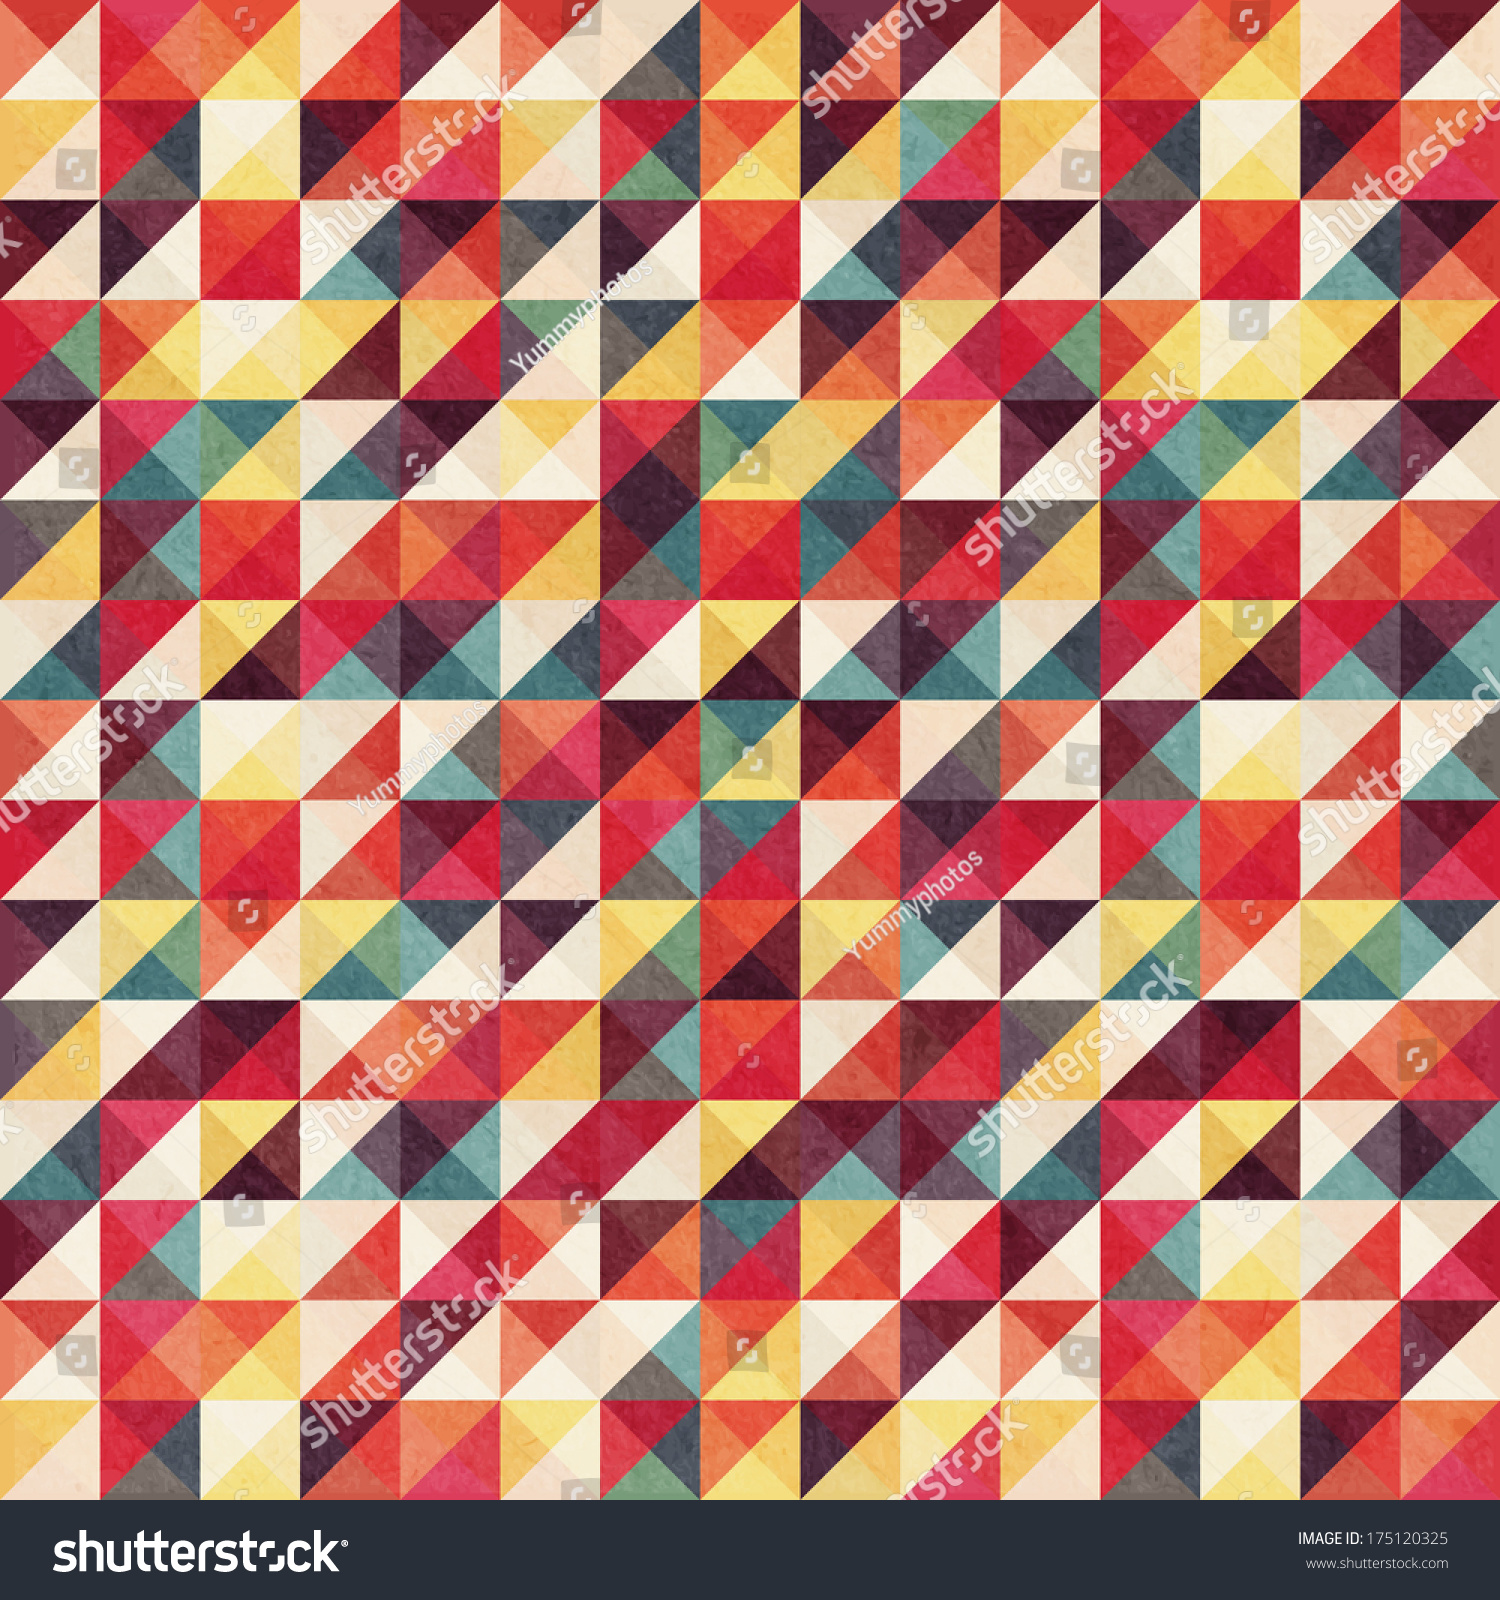 stock vector geometric background - photo #35